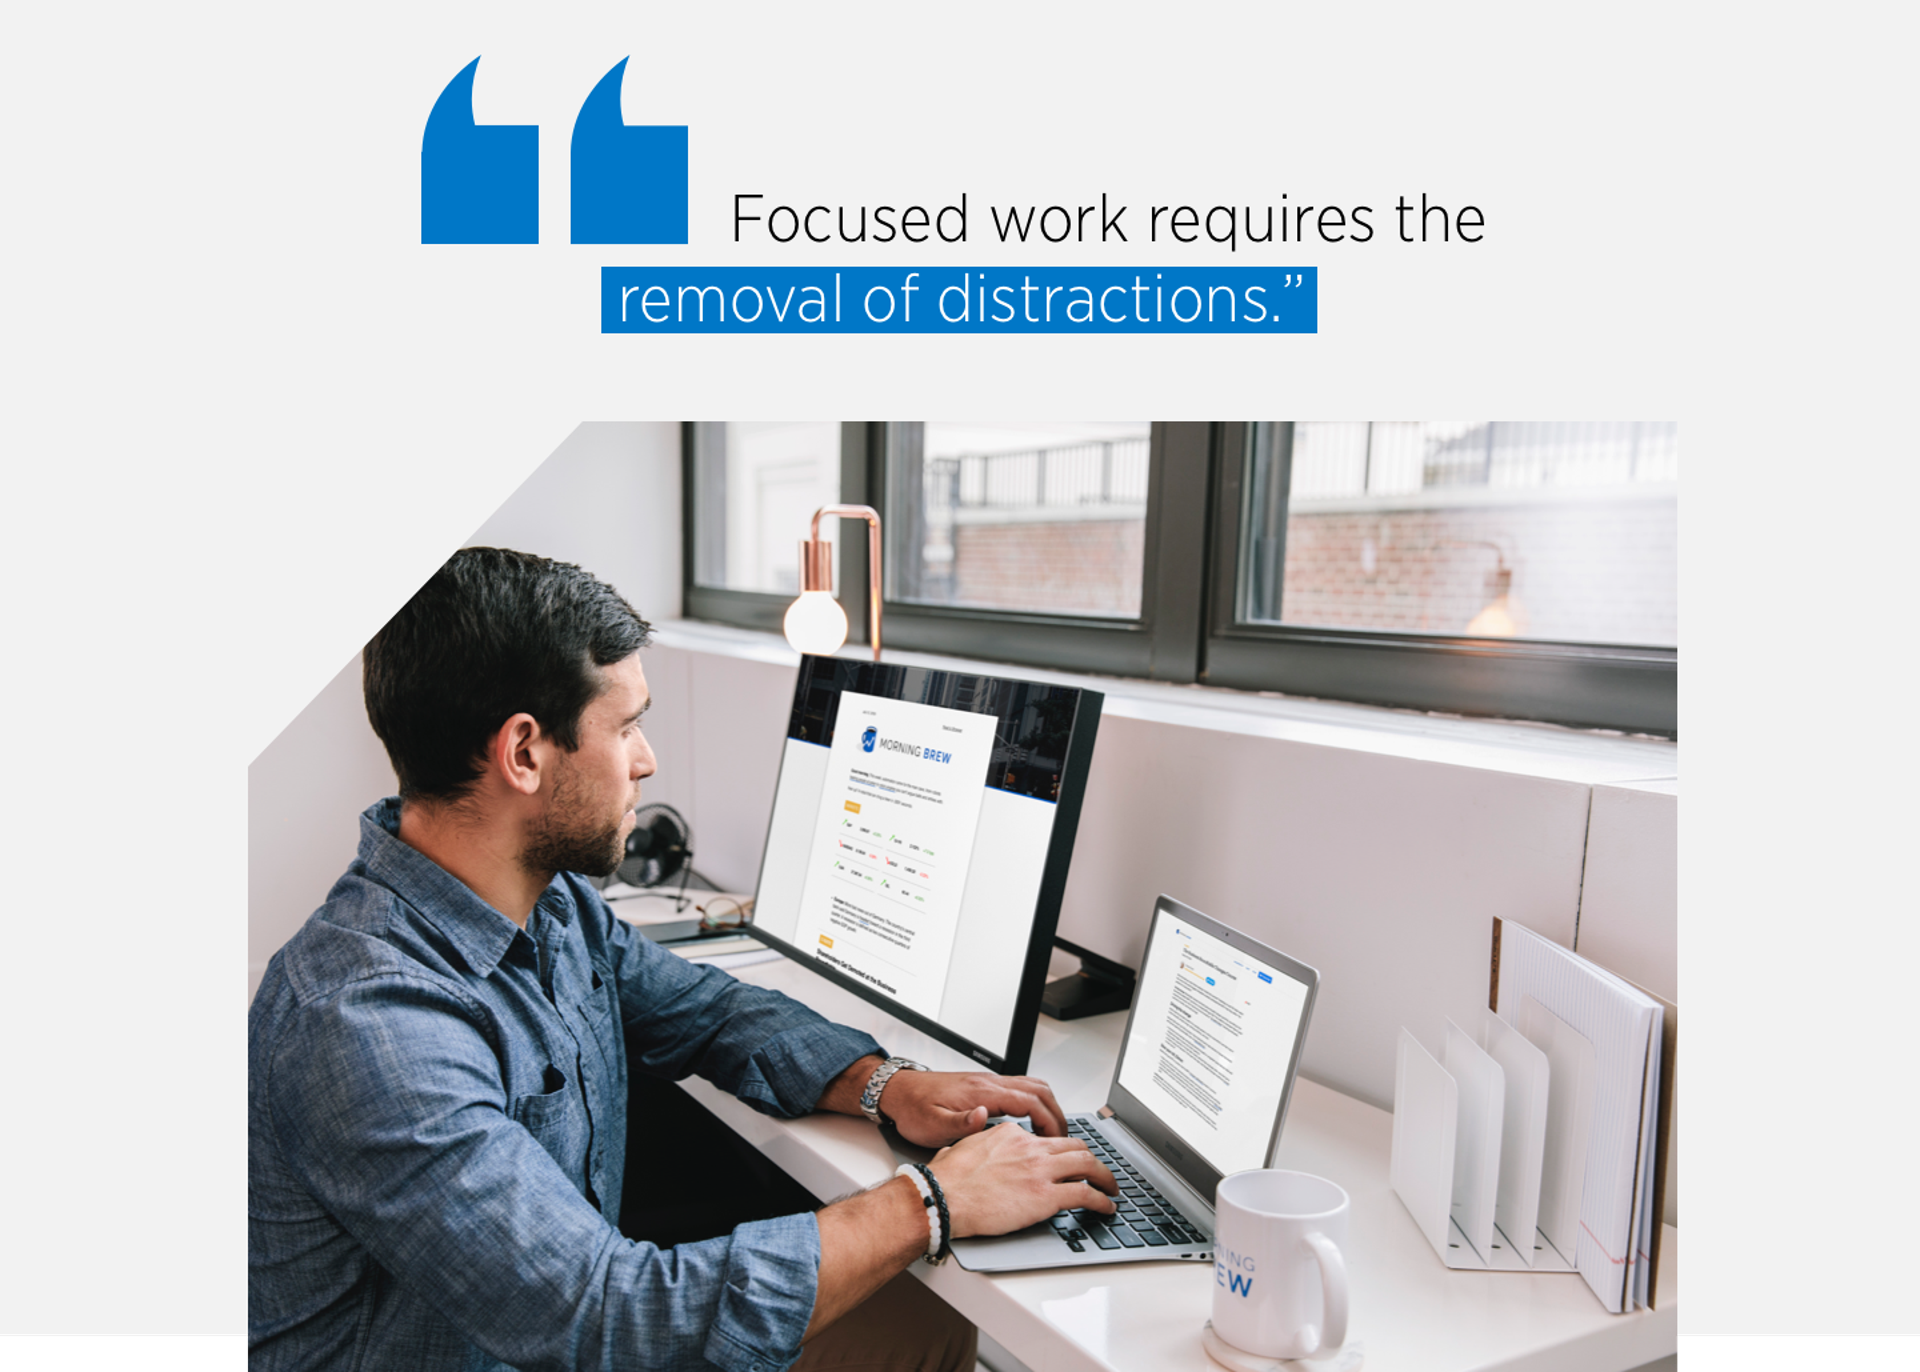 ″Focused work requires the 